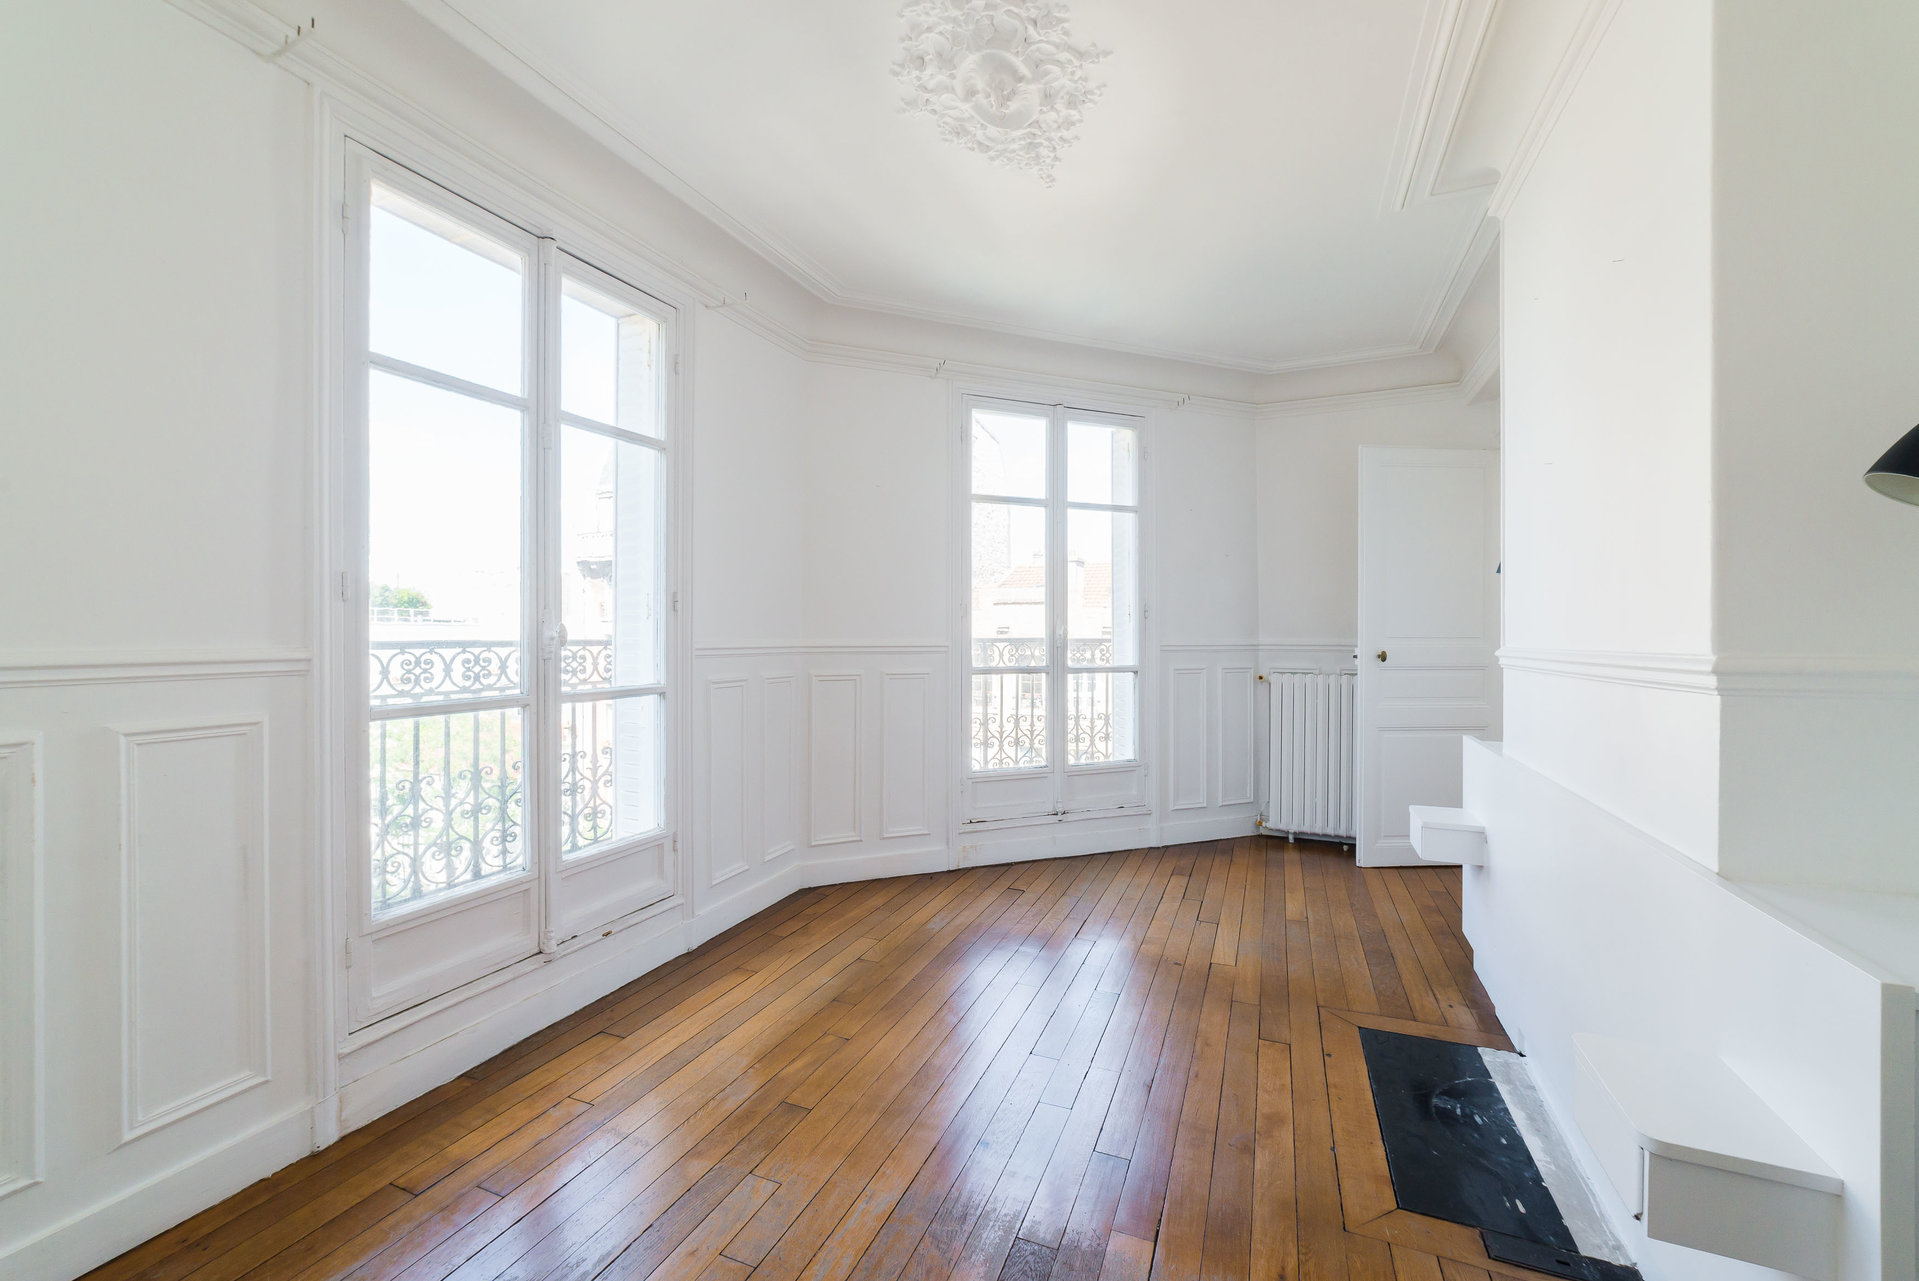 Apartment for sale with a view of the Eiffel Tower, Paris